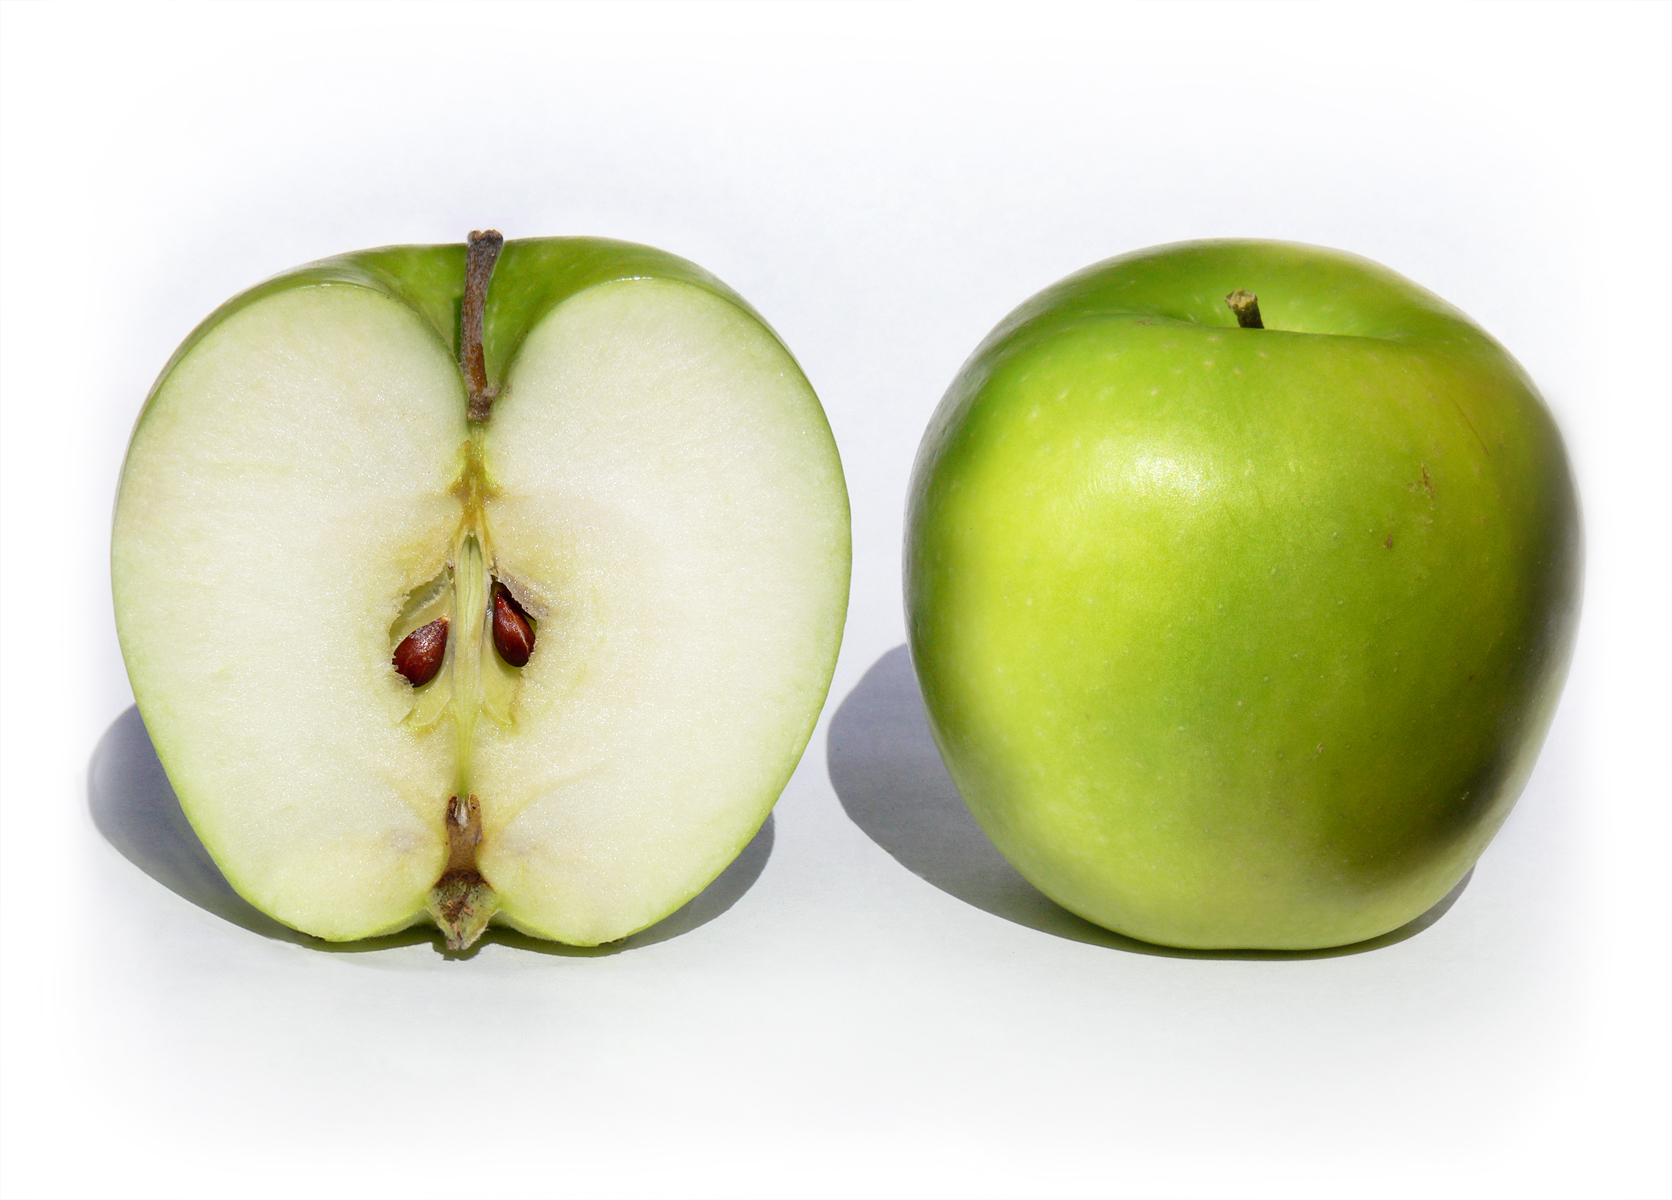 Types of Green Apple's http://ast.wikipedia.org/wiki/Archivu:Granny_Smith_Apples.jpg